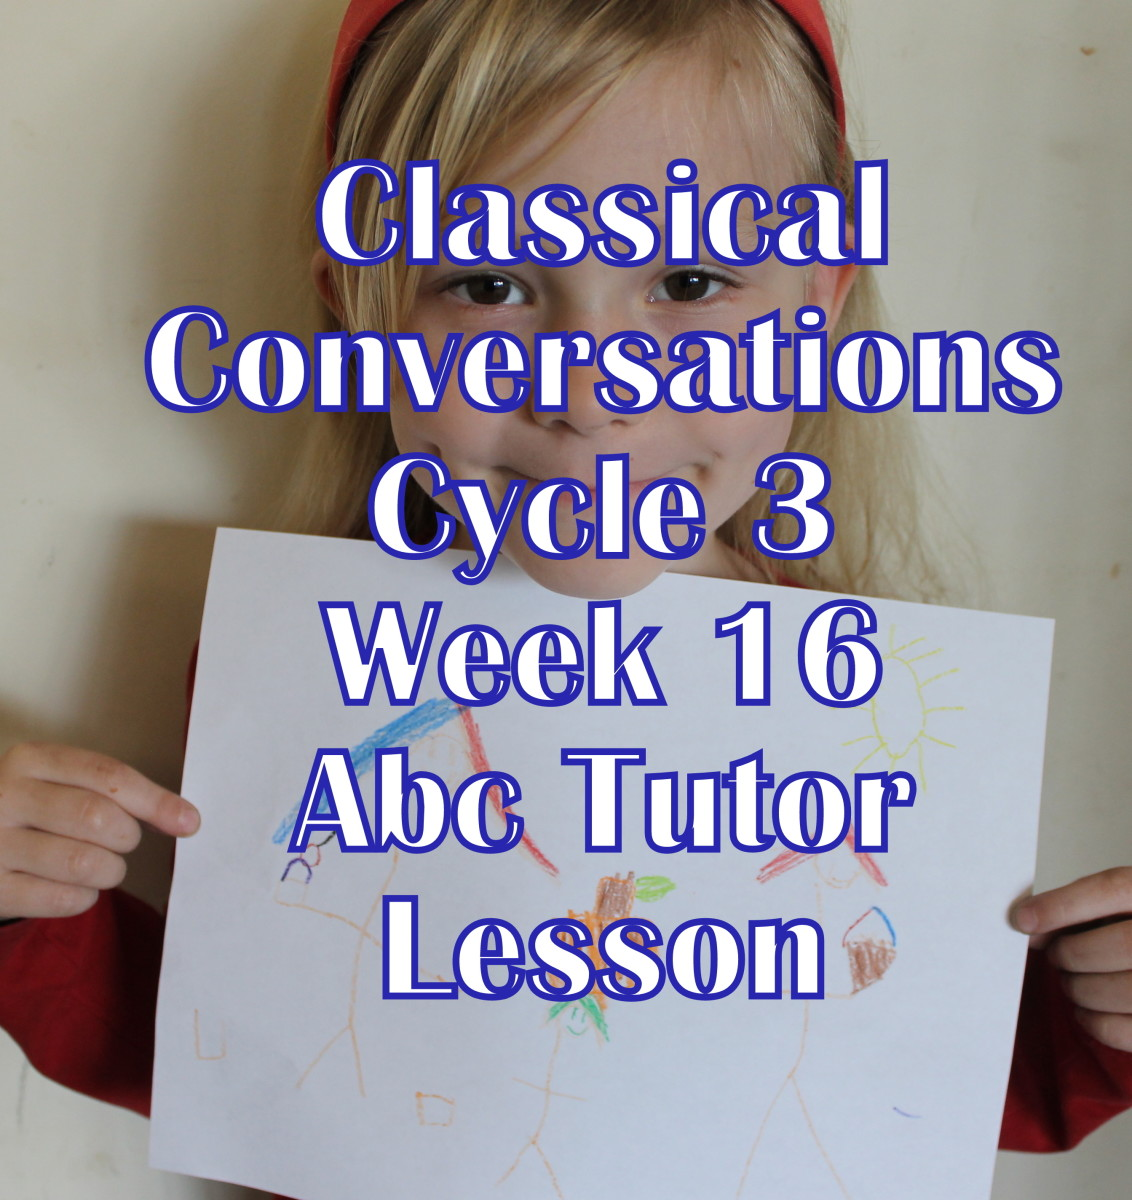 CC Cycle 3 Week 16 Lesson for Abecedarian Tutors